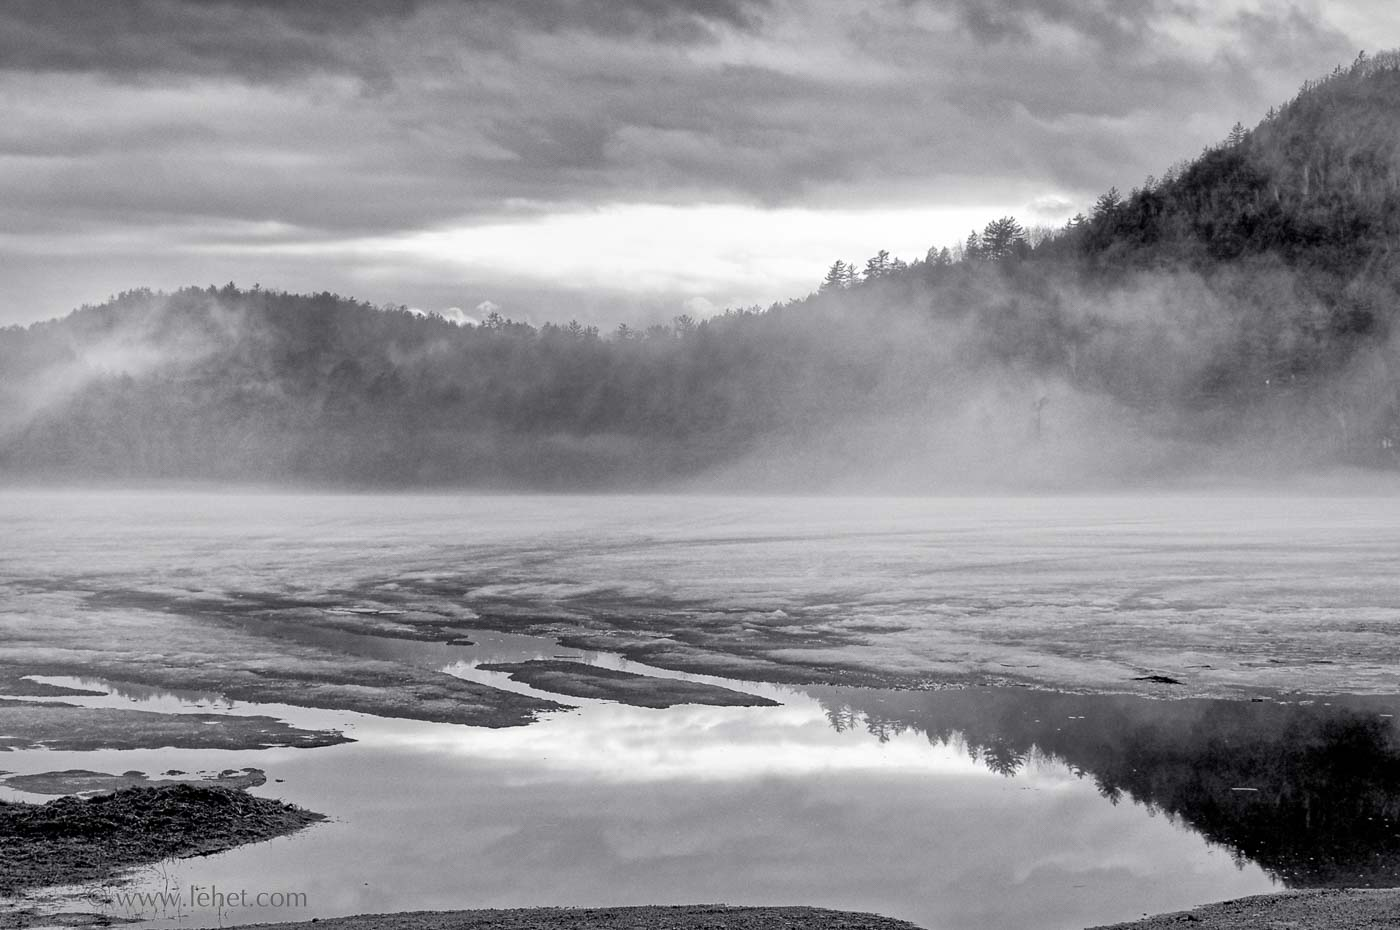 Post Pond, Ice and Mist, Black and White